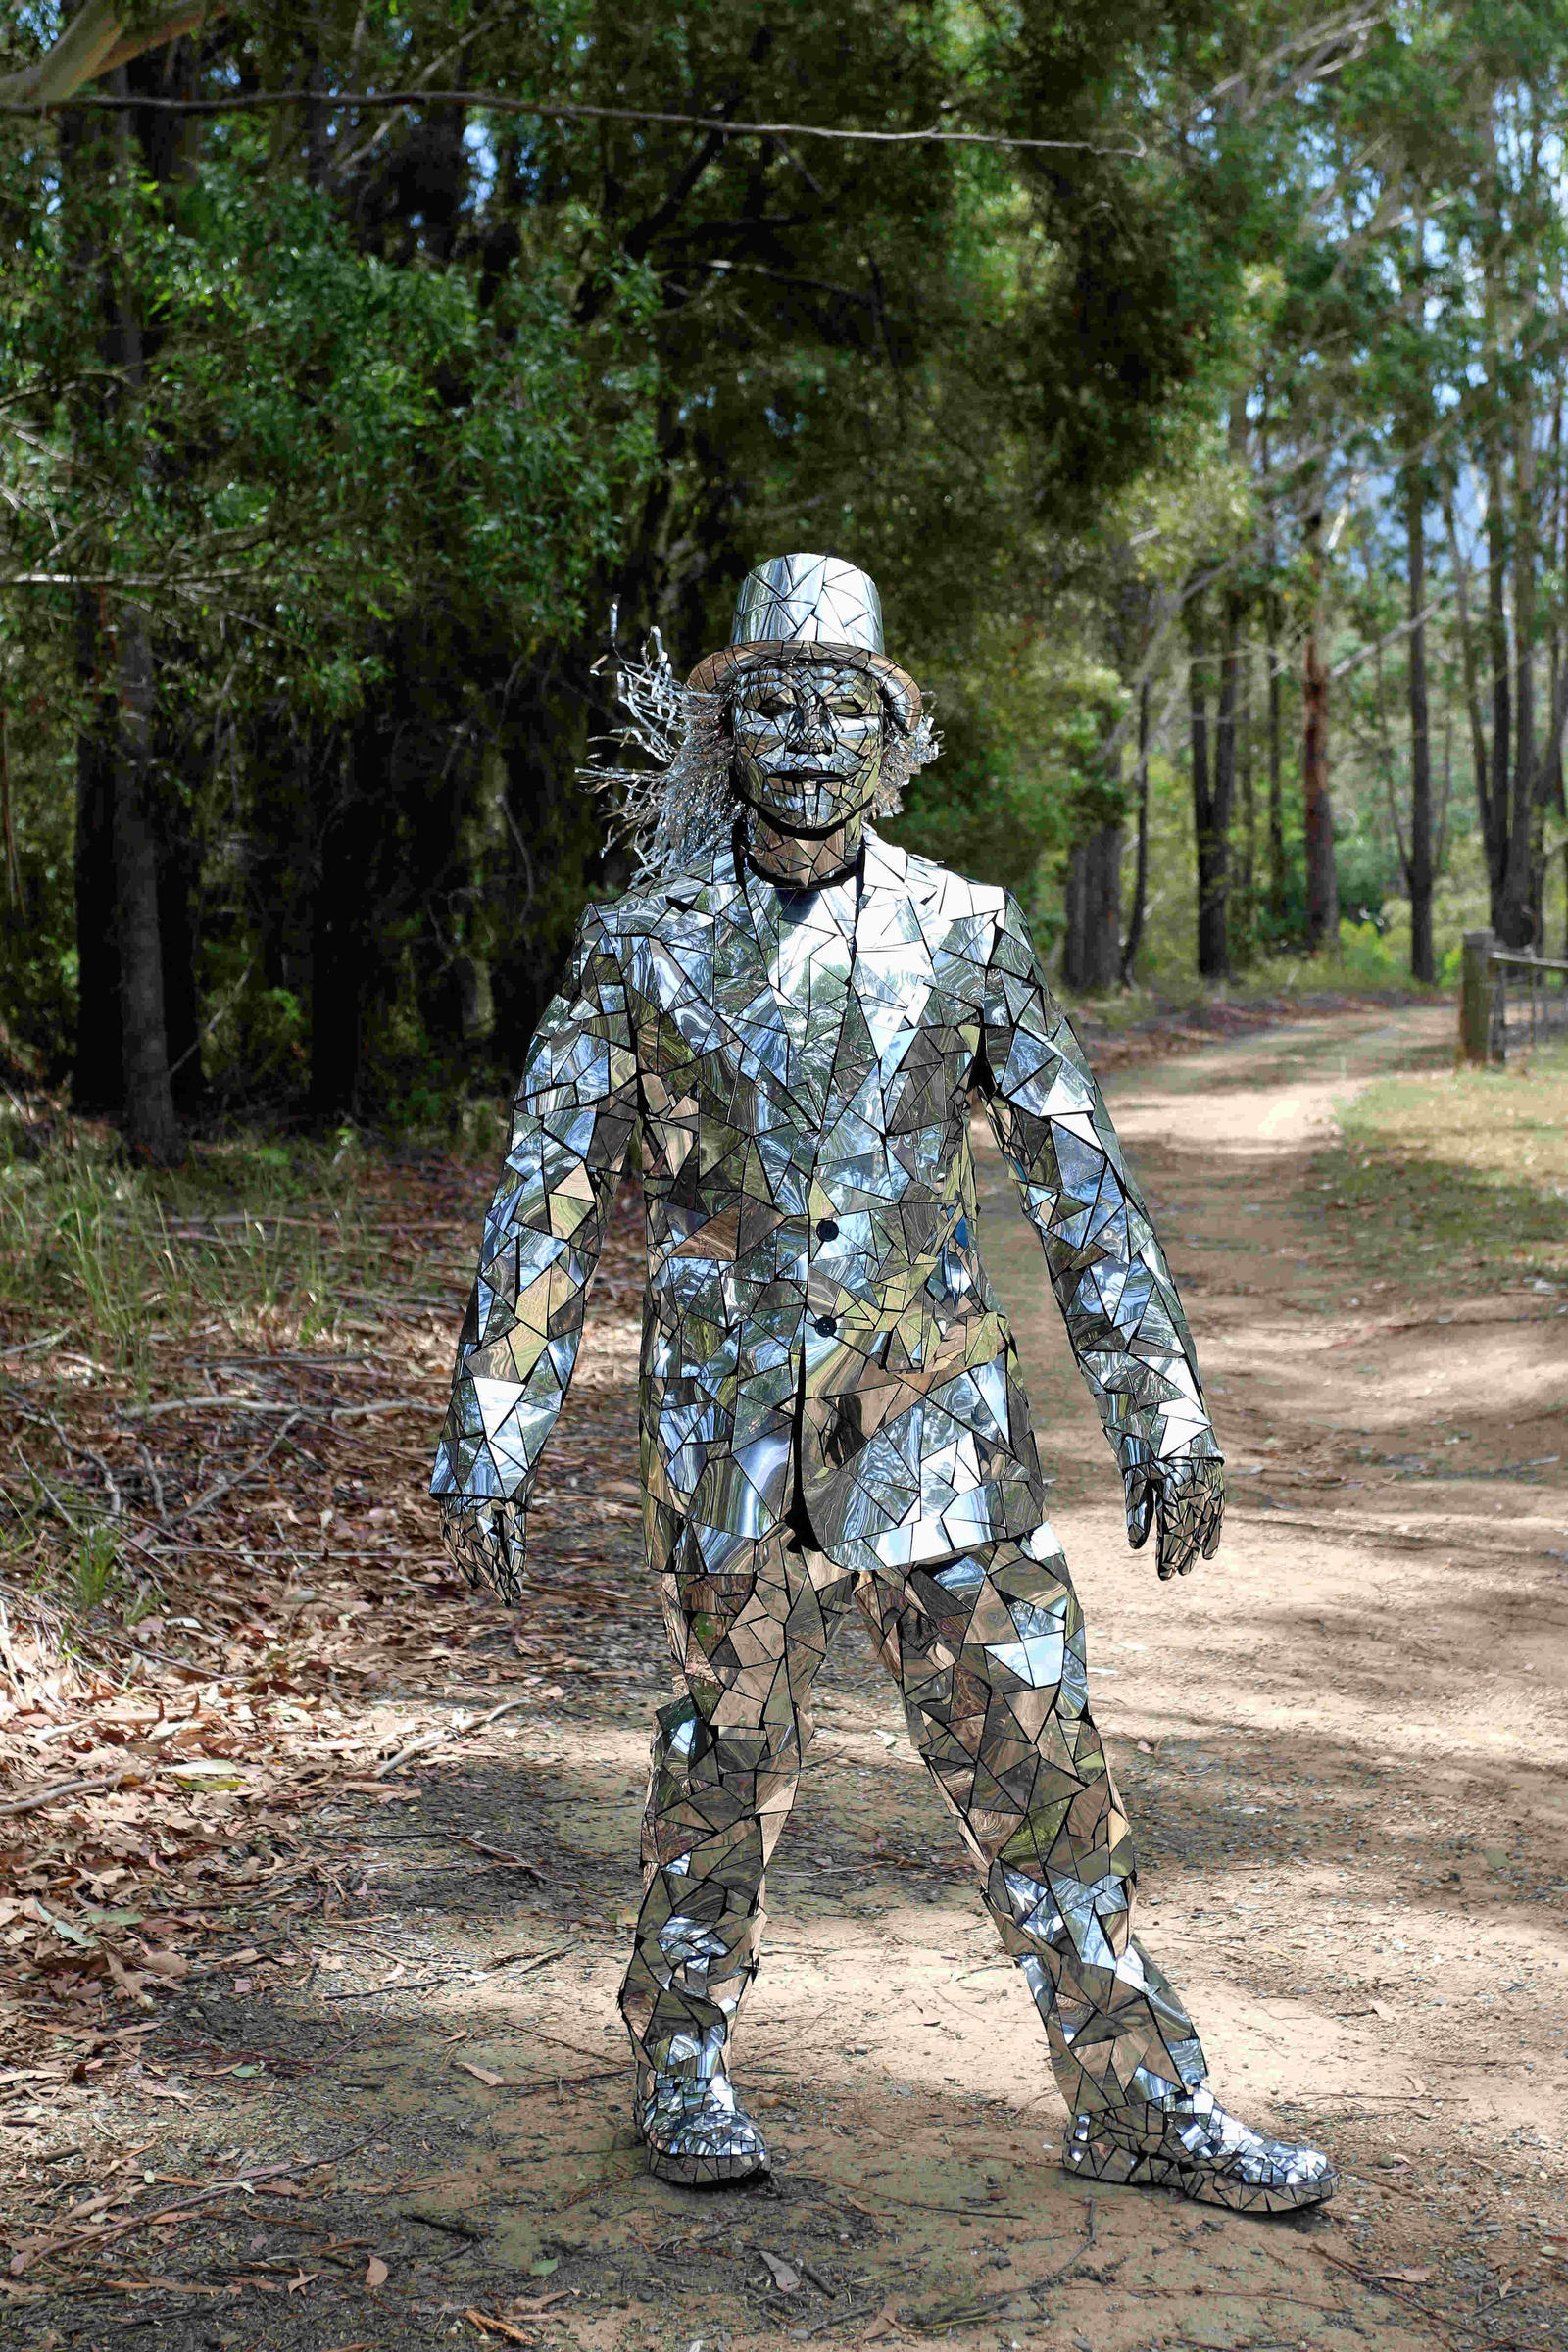 Mirror man costume I made for NYE by Davenwolf